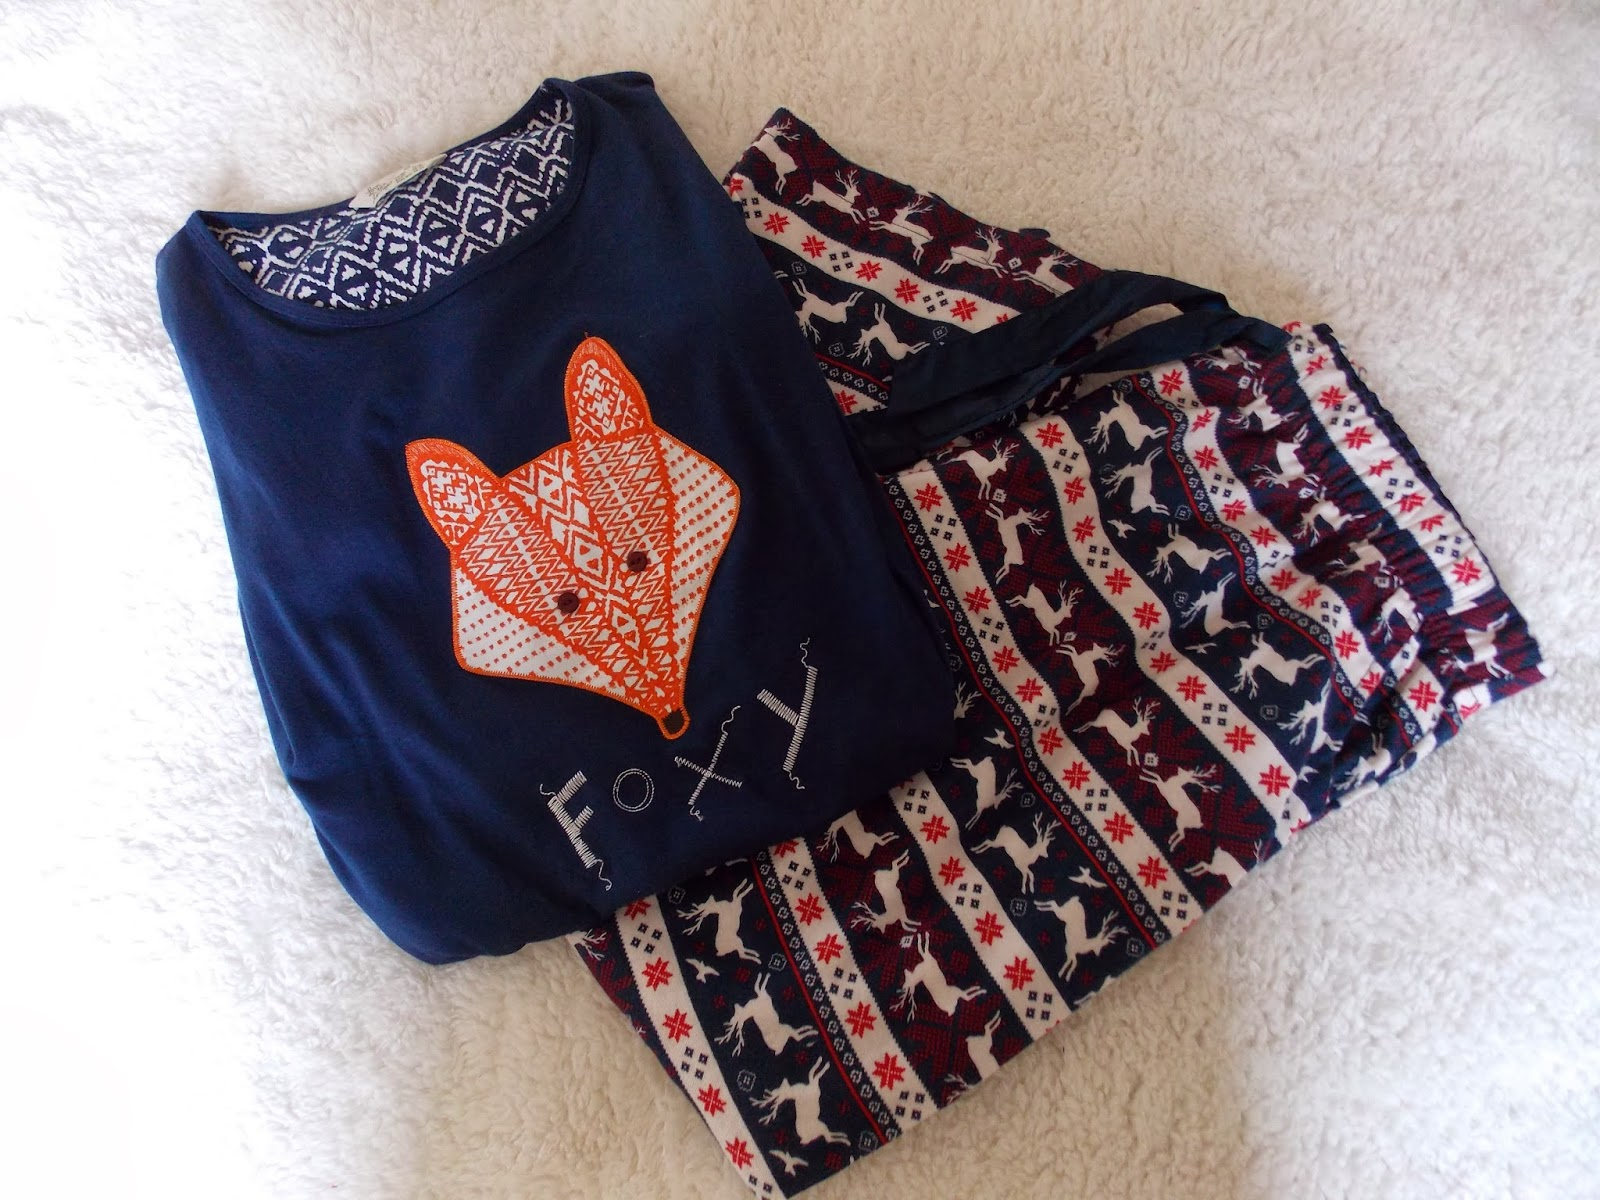 A primark nightie with fox print and pyjama bottoms with leaping reindeer